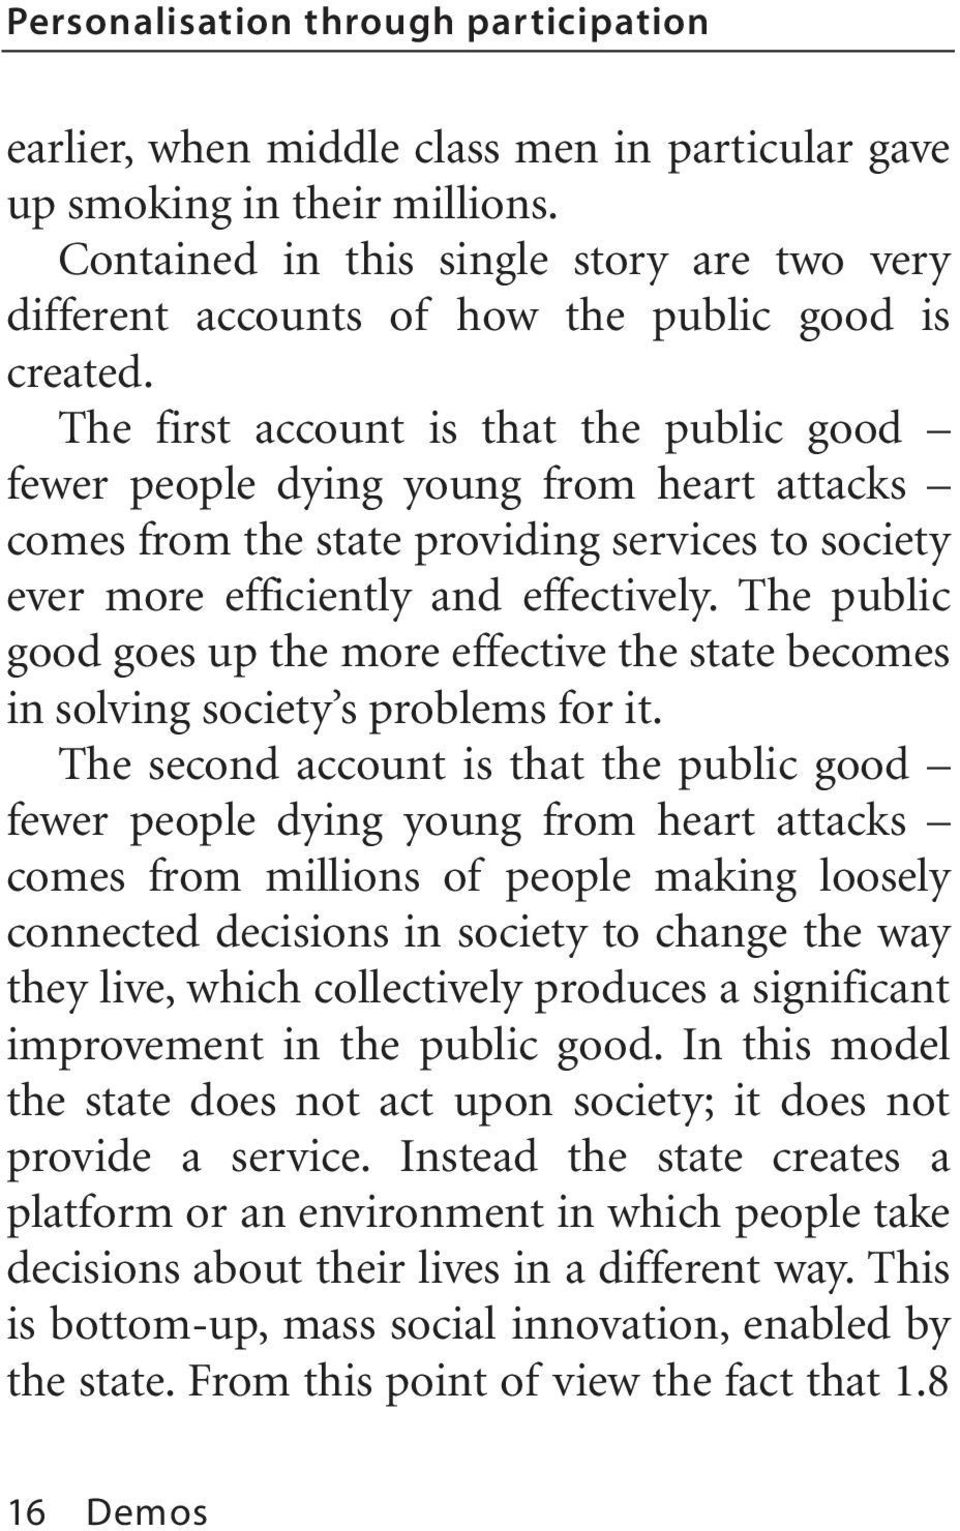 The first account is that the public good fewer people dying young from heart attacks comes from the state providing services to society ever more efficiently and effectively.